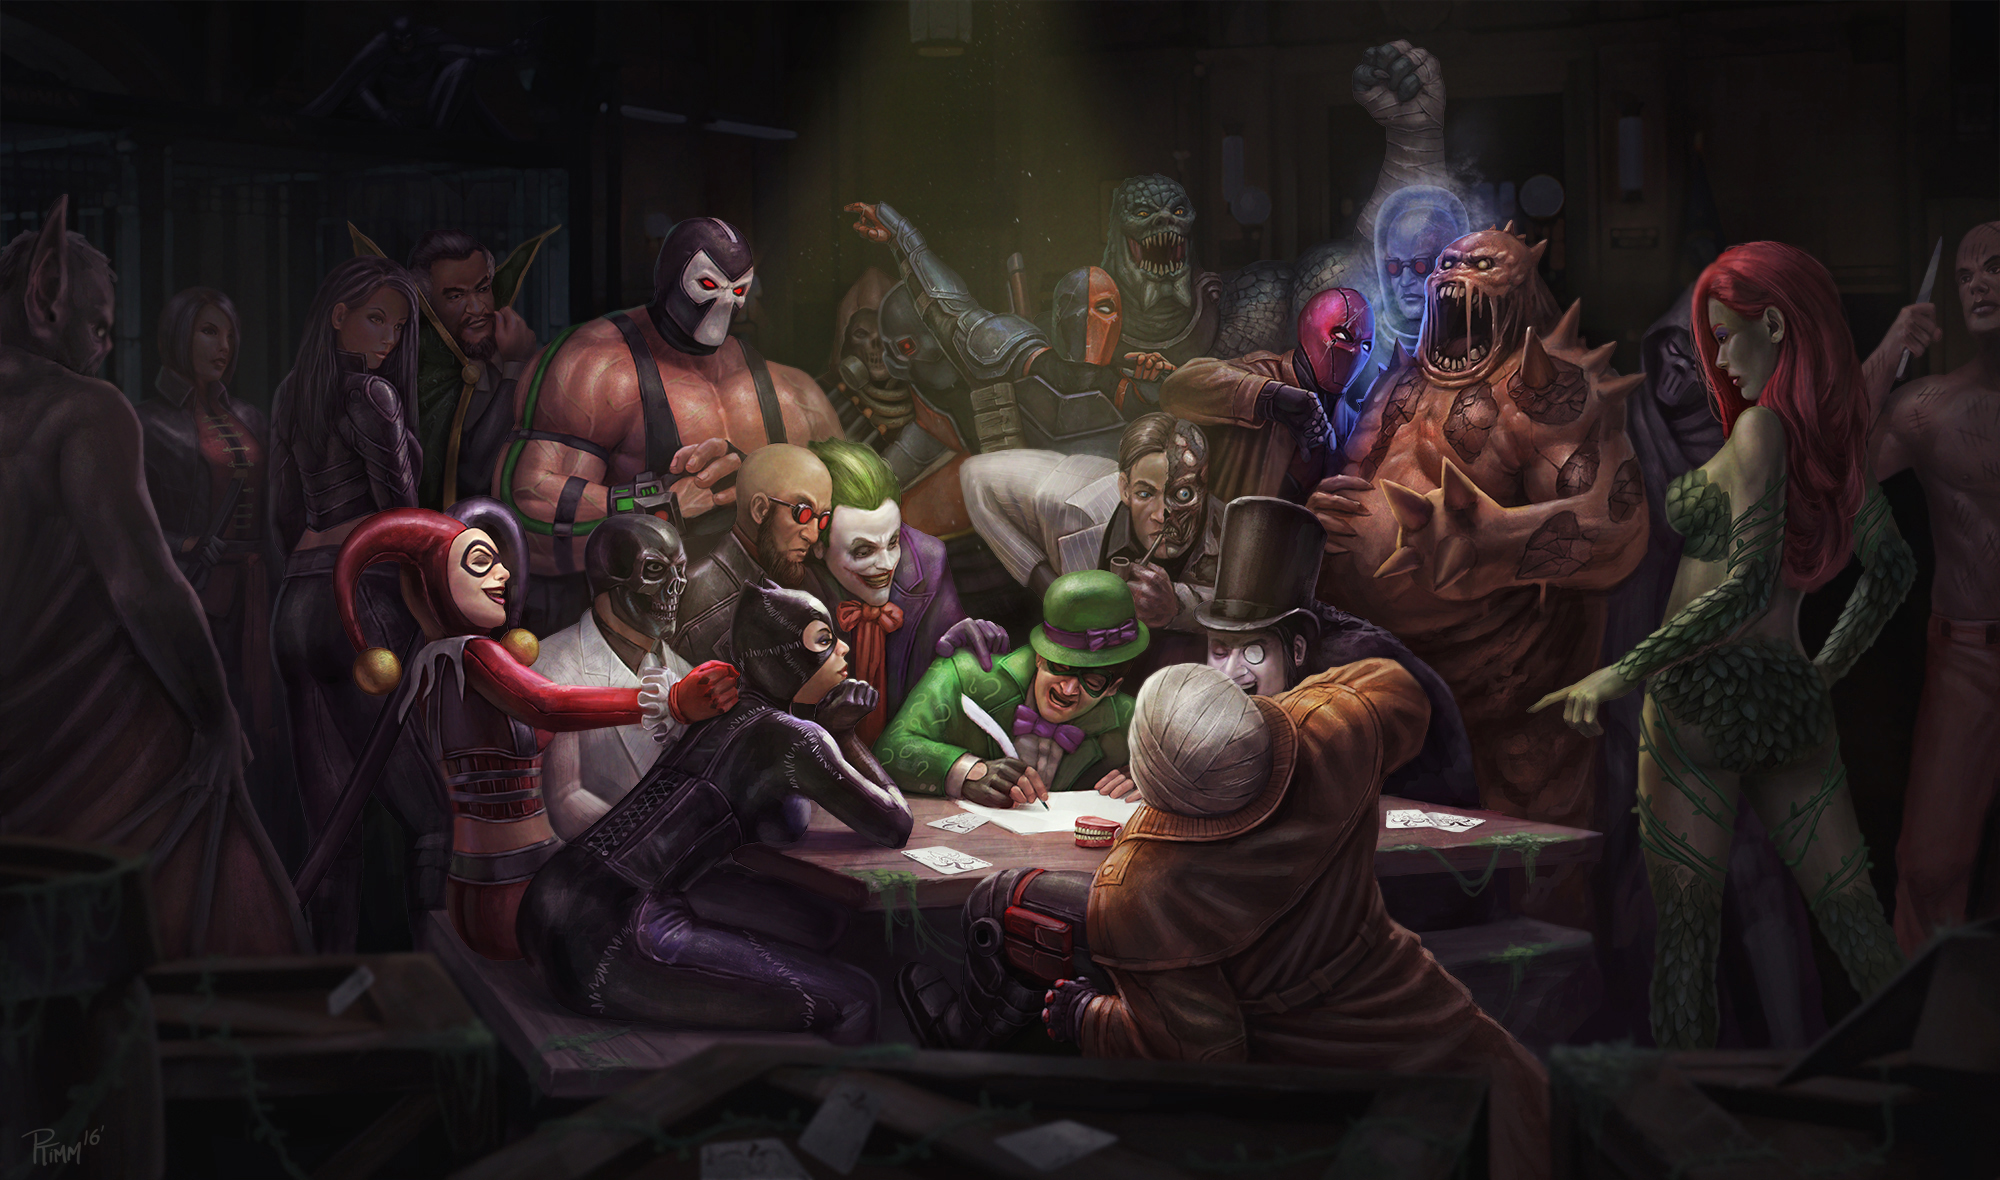 55 Penguin DC Comics HD Wallpapers Background Images 2000x1180